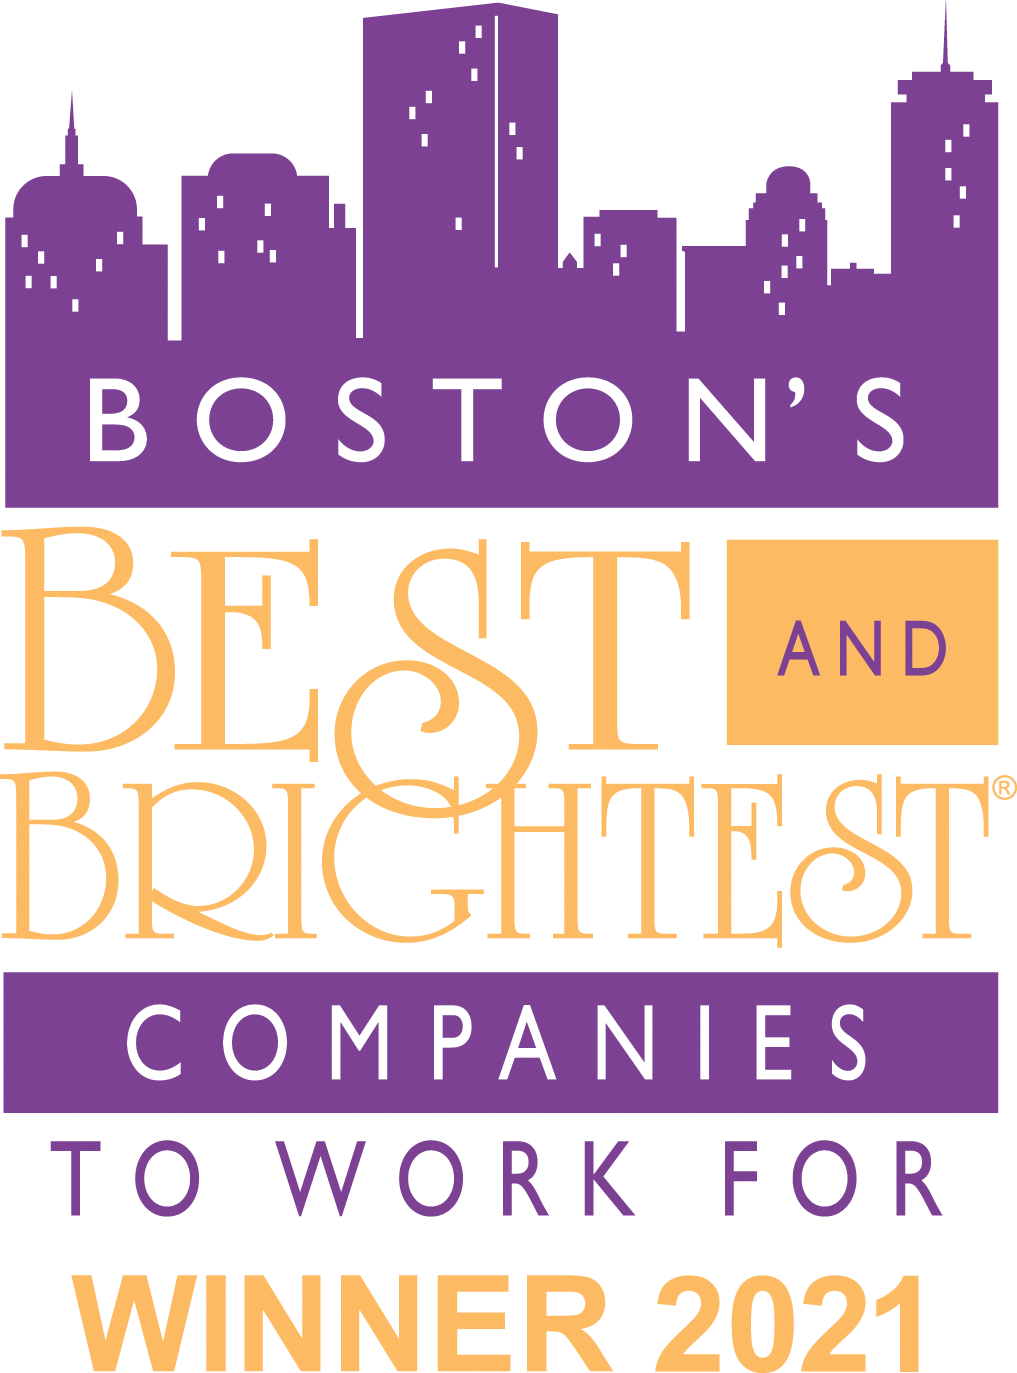 Boston's Best and Brightest 2021 Award